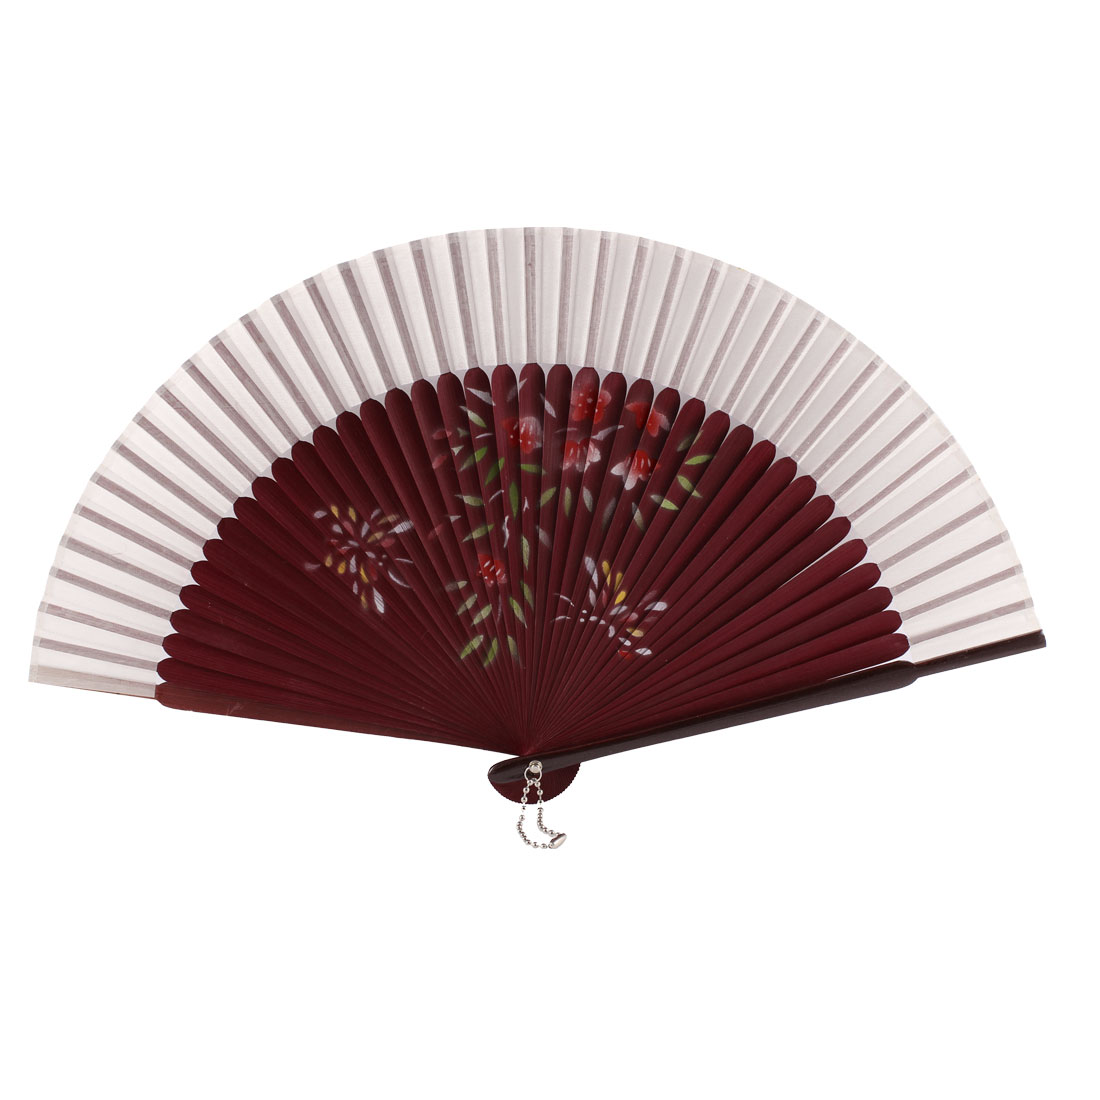 Chinese Style Flower Printed Nylon Bamboo Rib Folding Hand Held Fan Fans Art Decoration White Burgundy